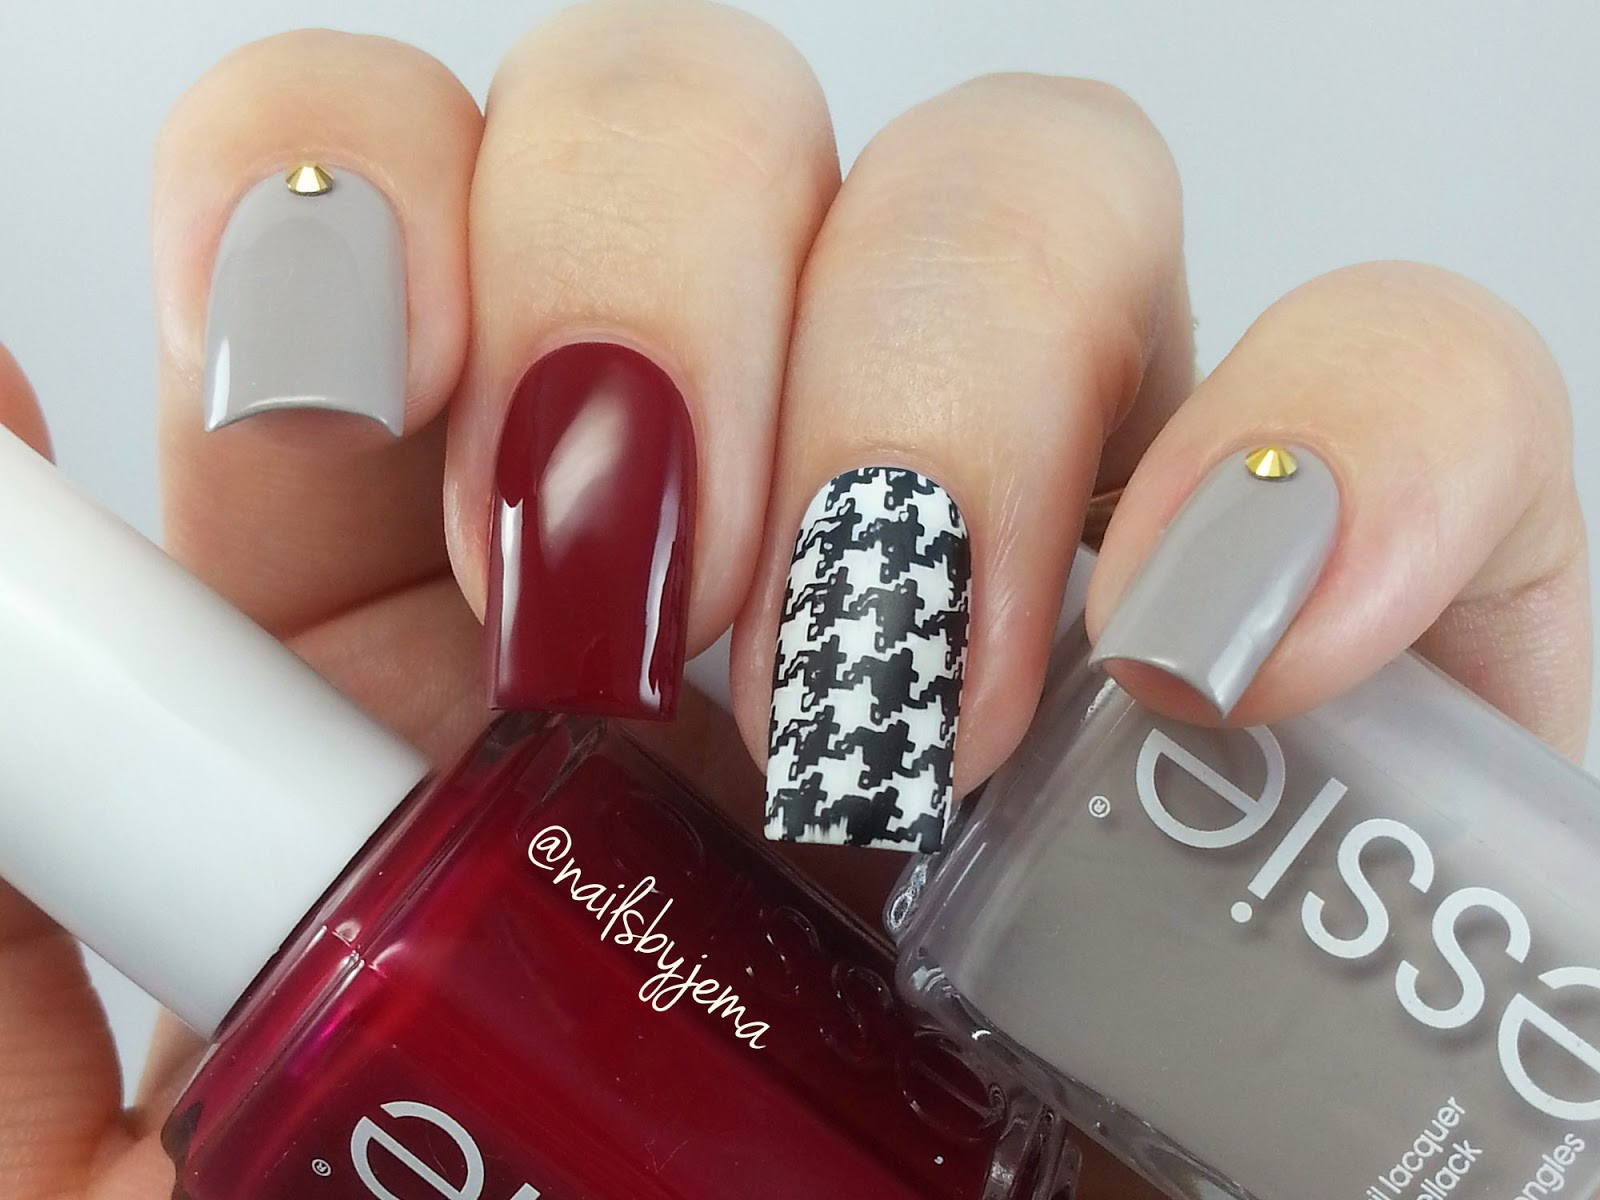 N A I L S B Y J E M A: Obsessed with Houndstooth and Essie Polish!